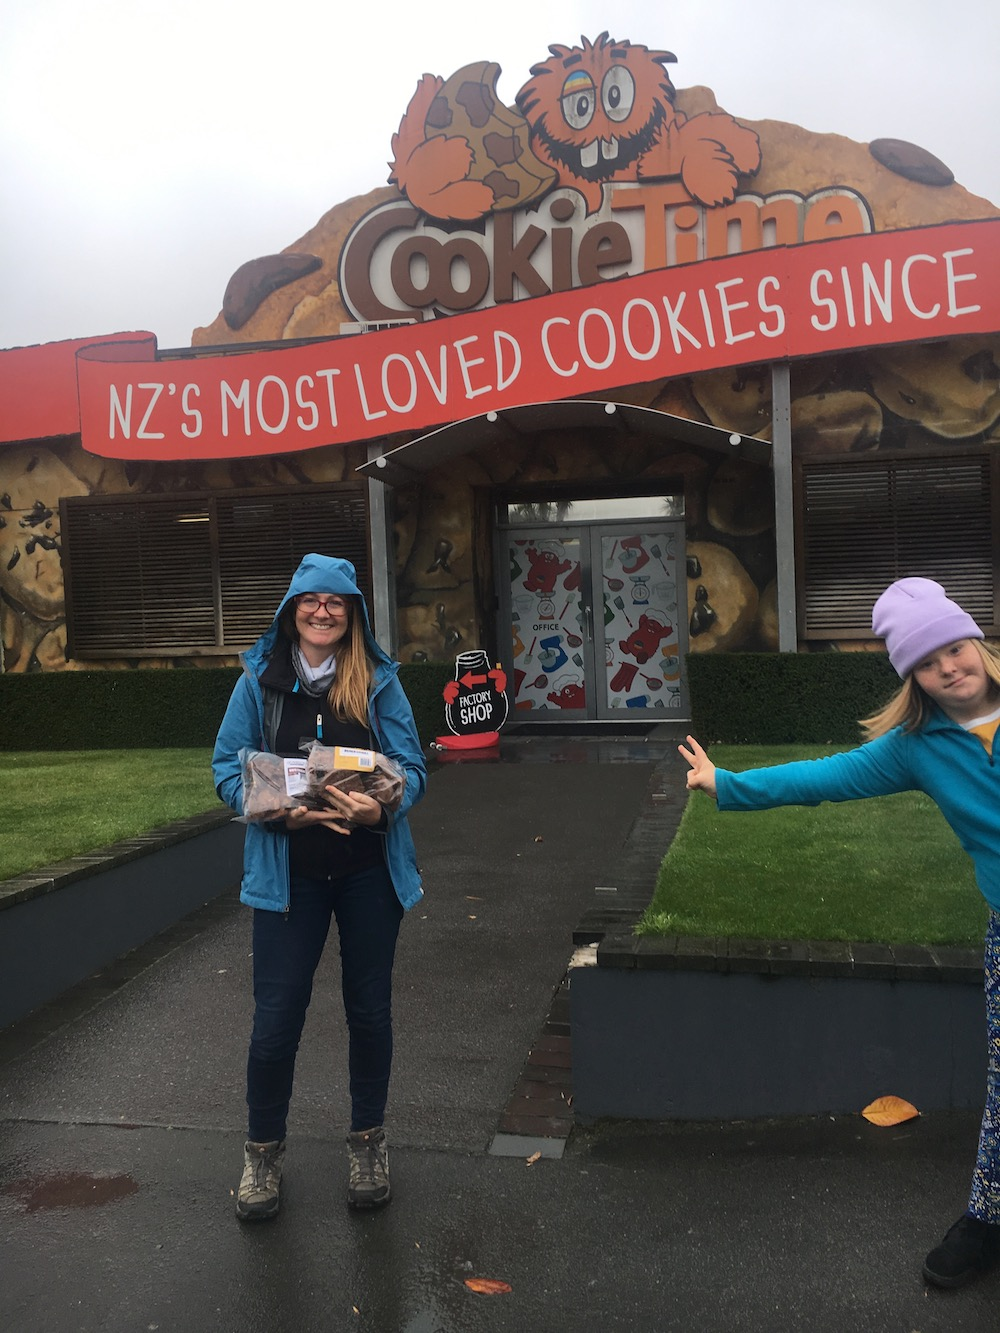 Cookie Time  - New Zealand's favorourite cookies.